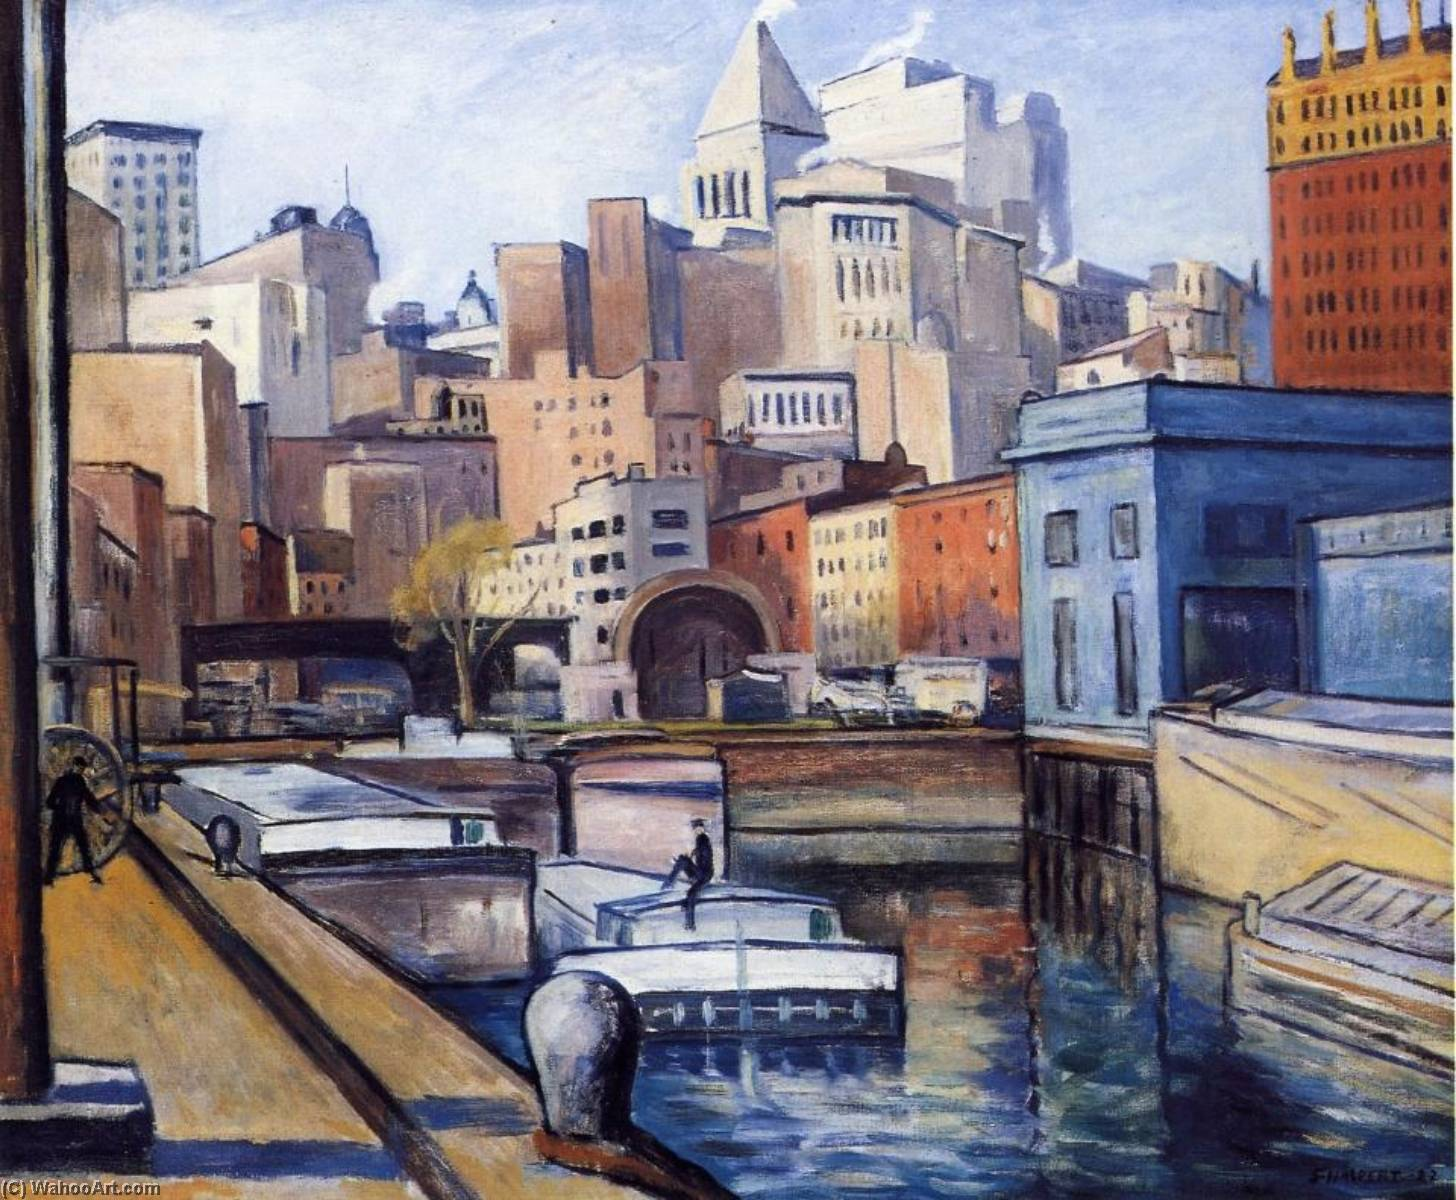 Downtown, Oil On Canvas by Samuel Halpert